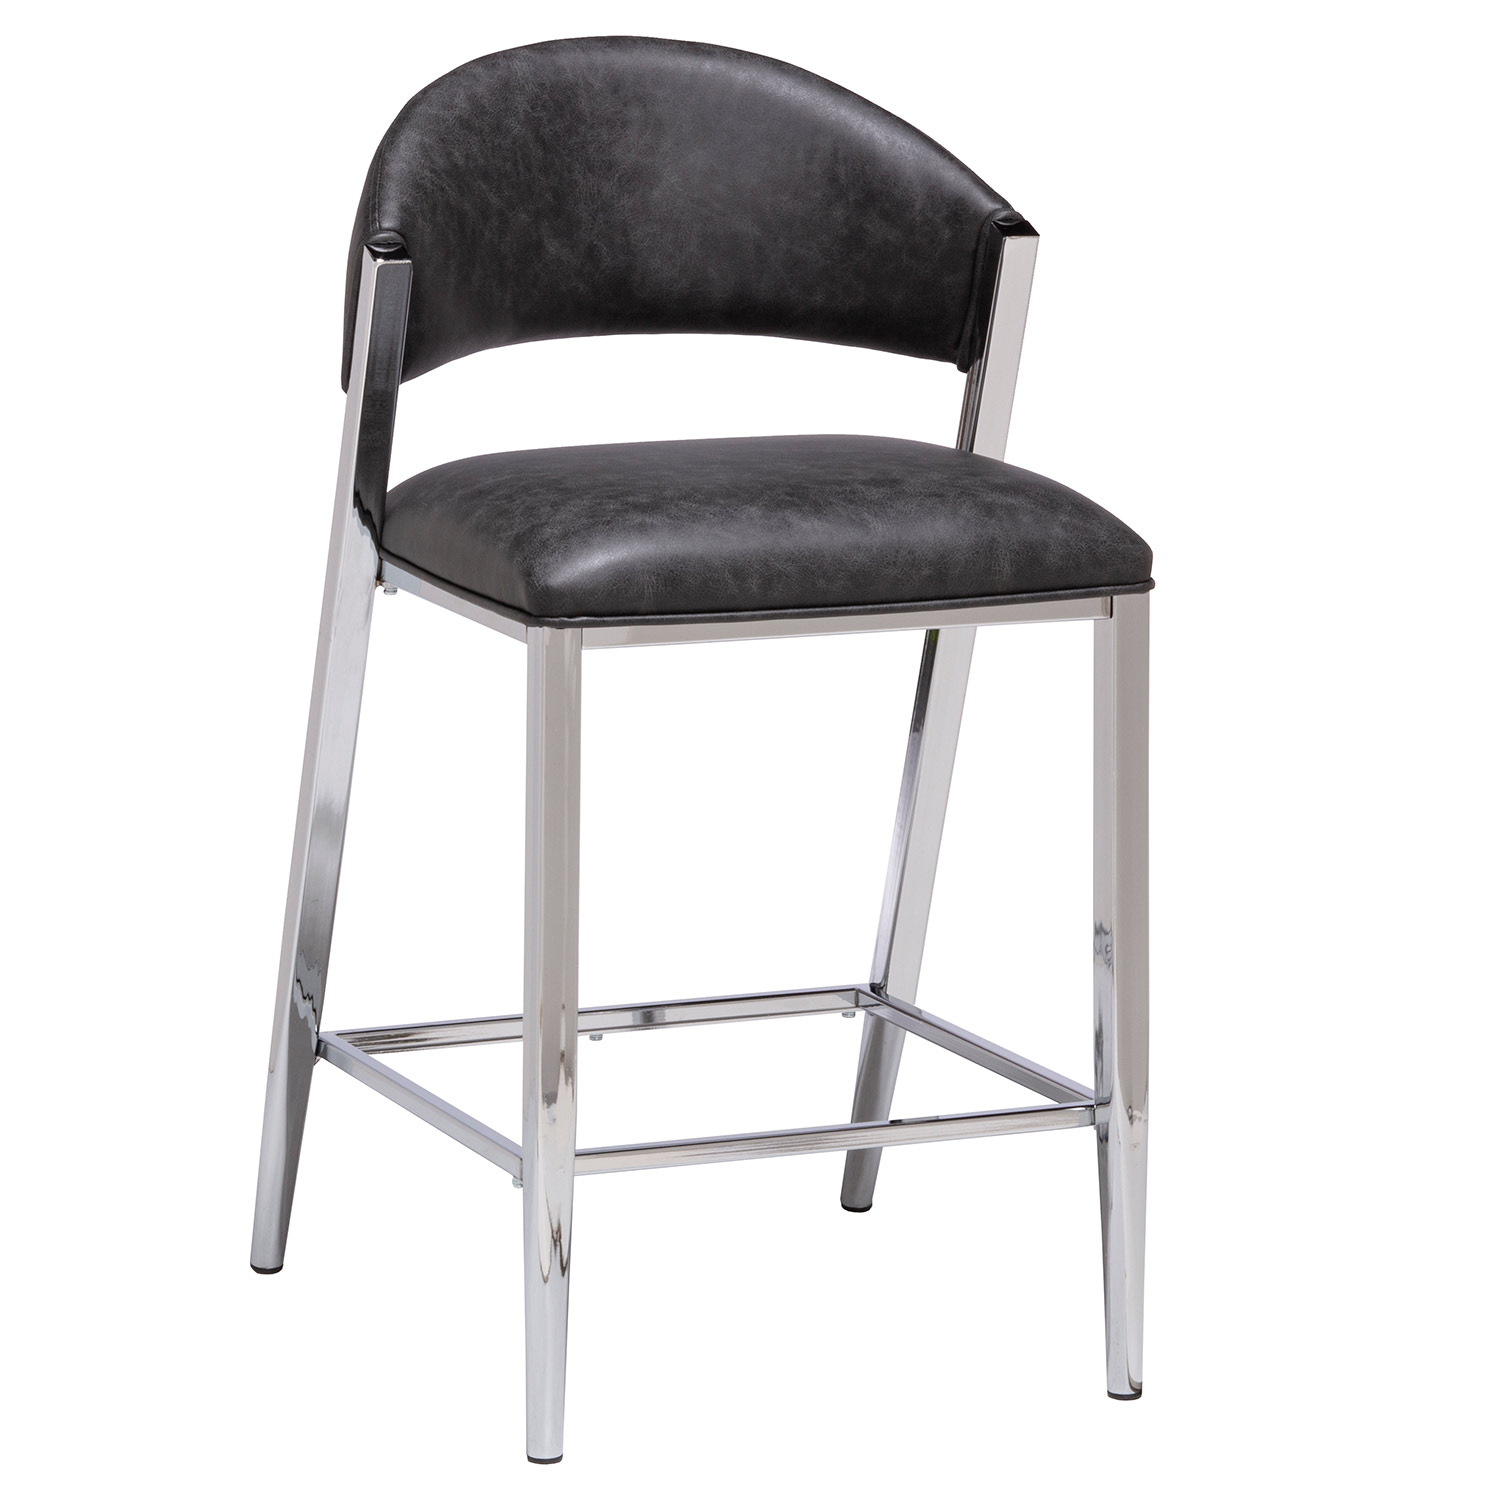 Hillsdale Molina Counter Height Stool - Chrome